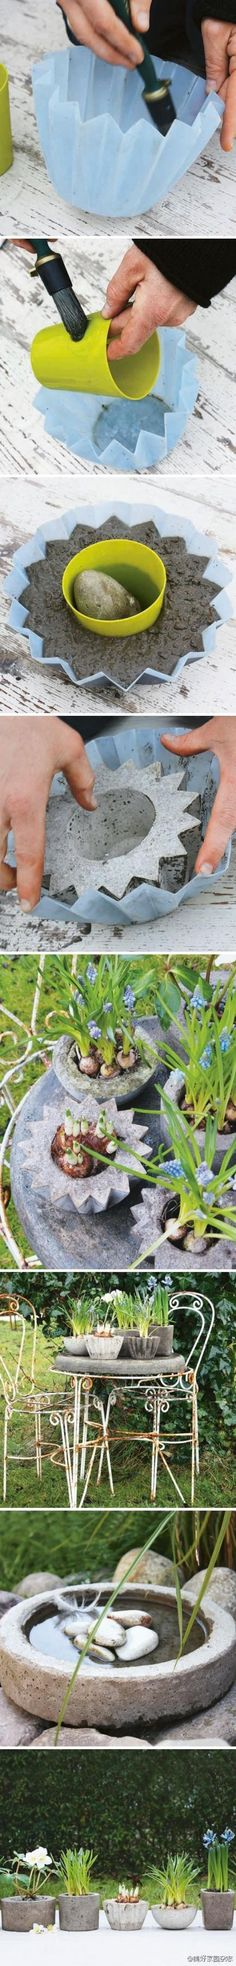 DIY concrete planters, bird bath, candleholders and more